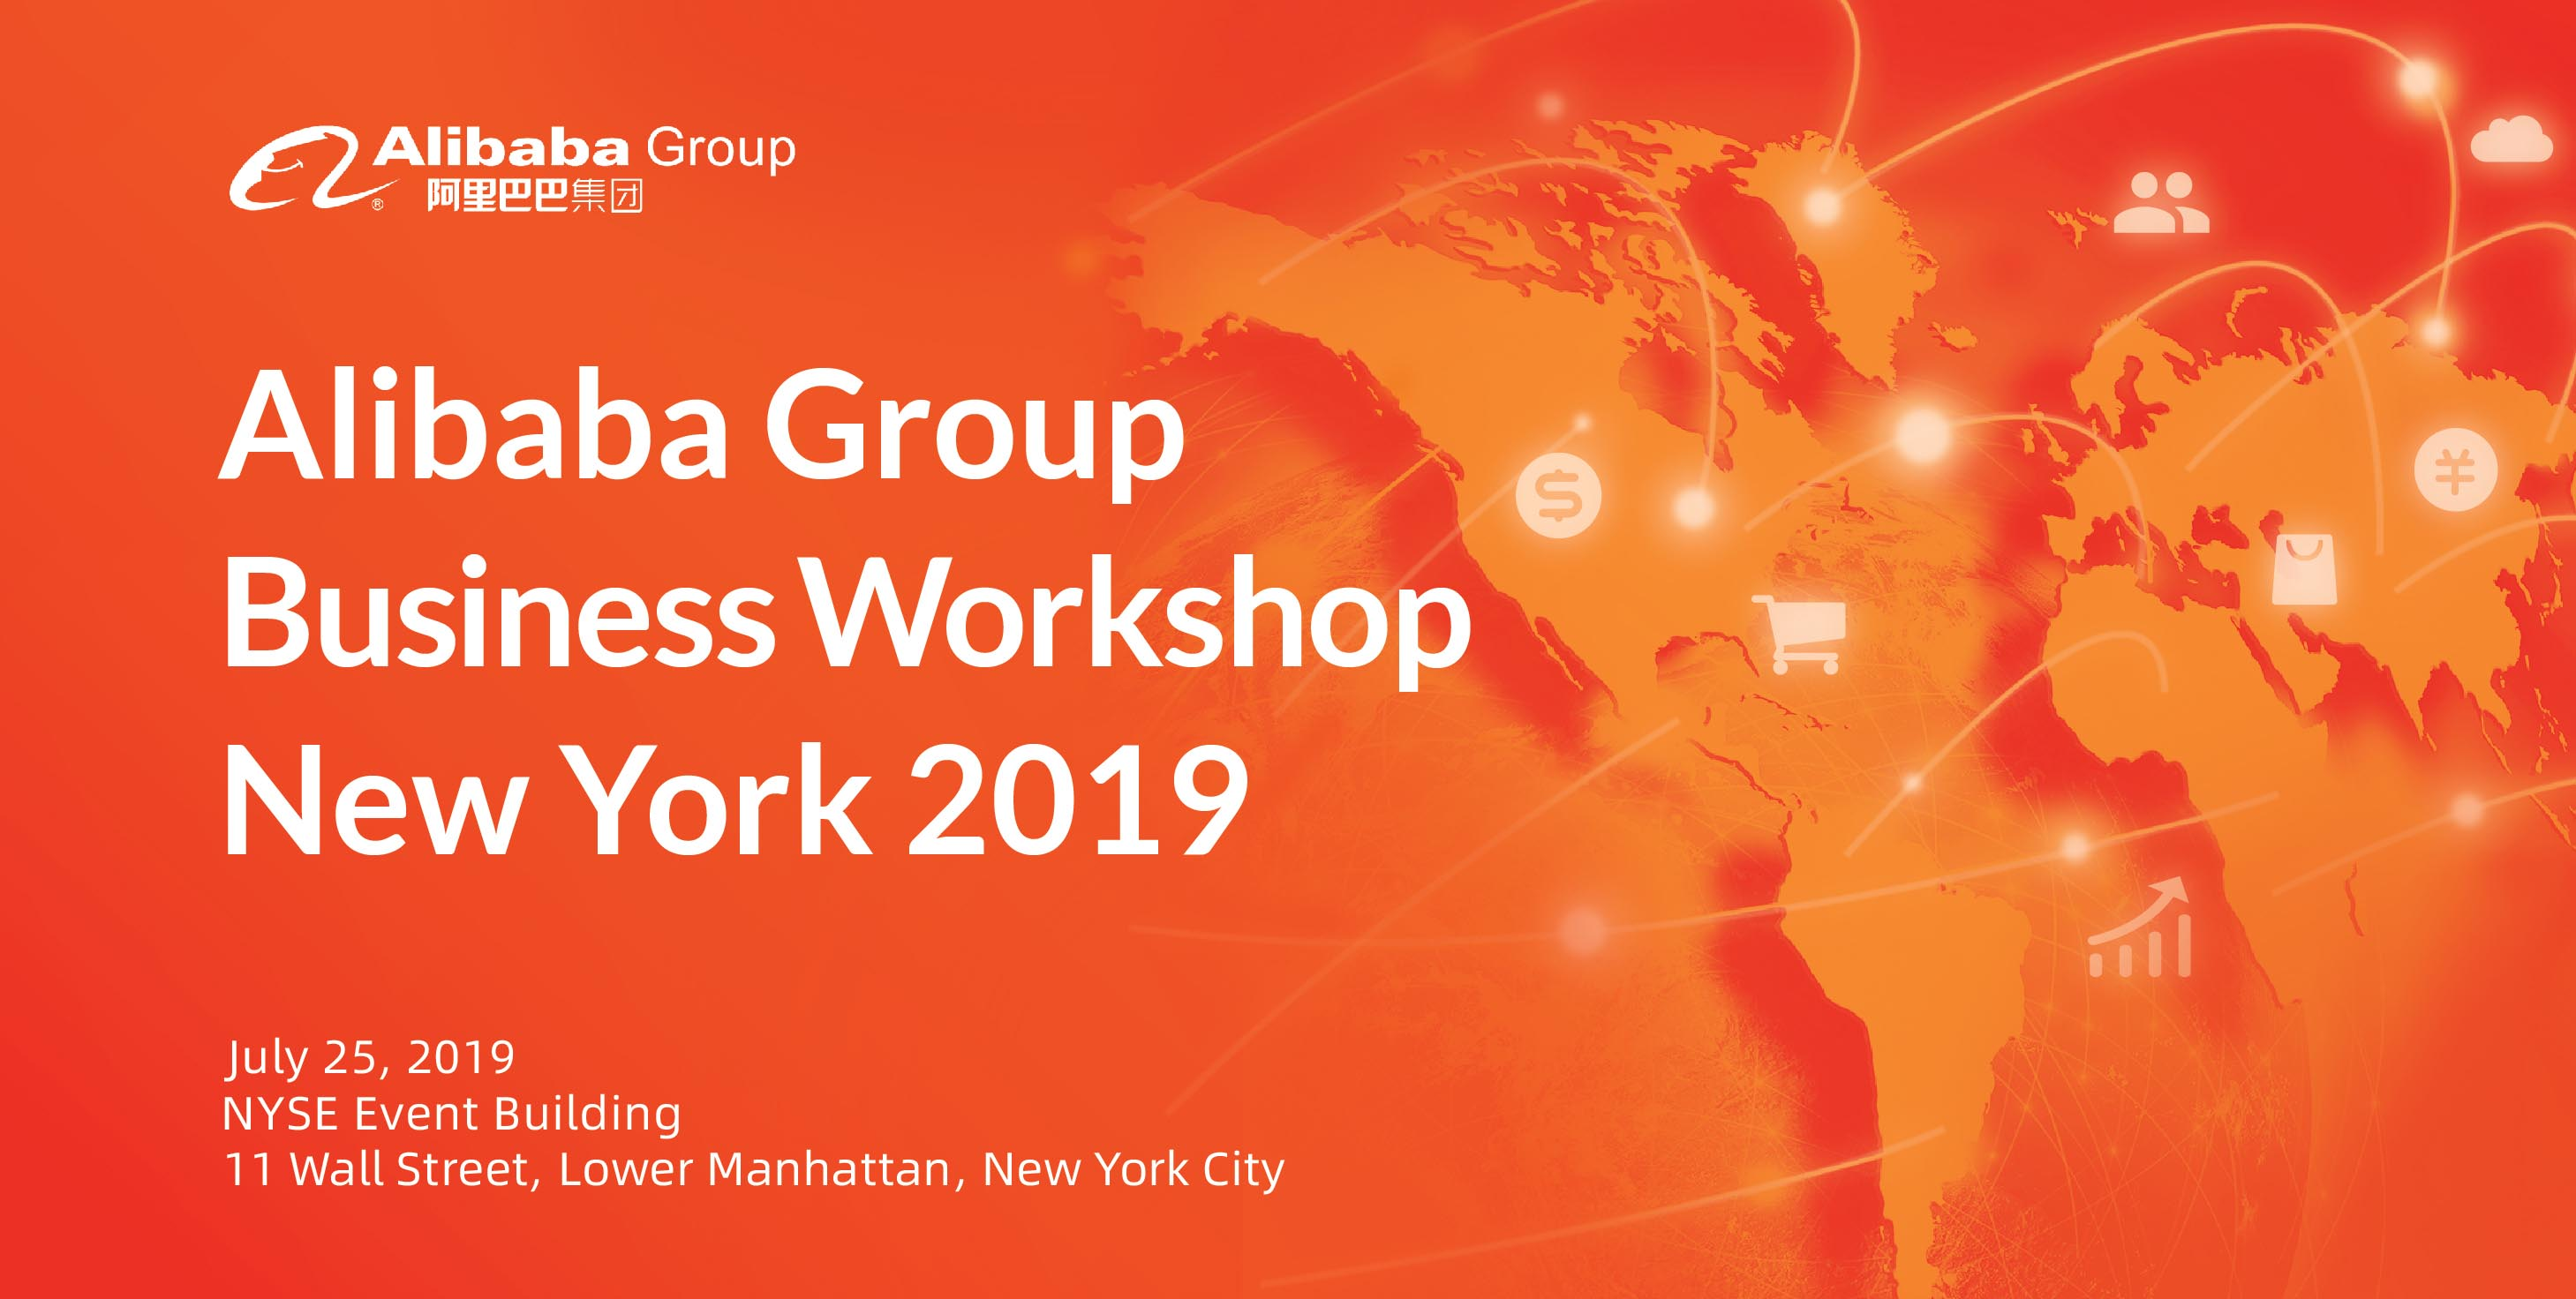 Alibaba Group Business Workshop - New York 2019